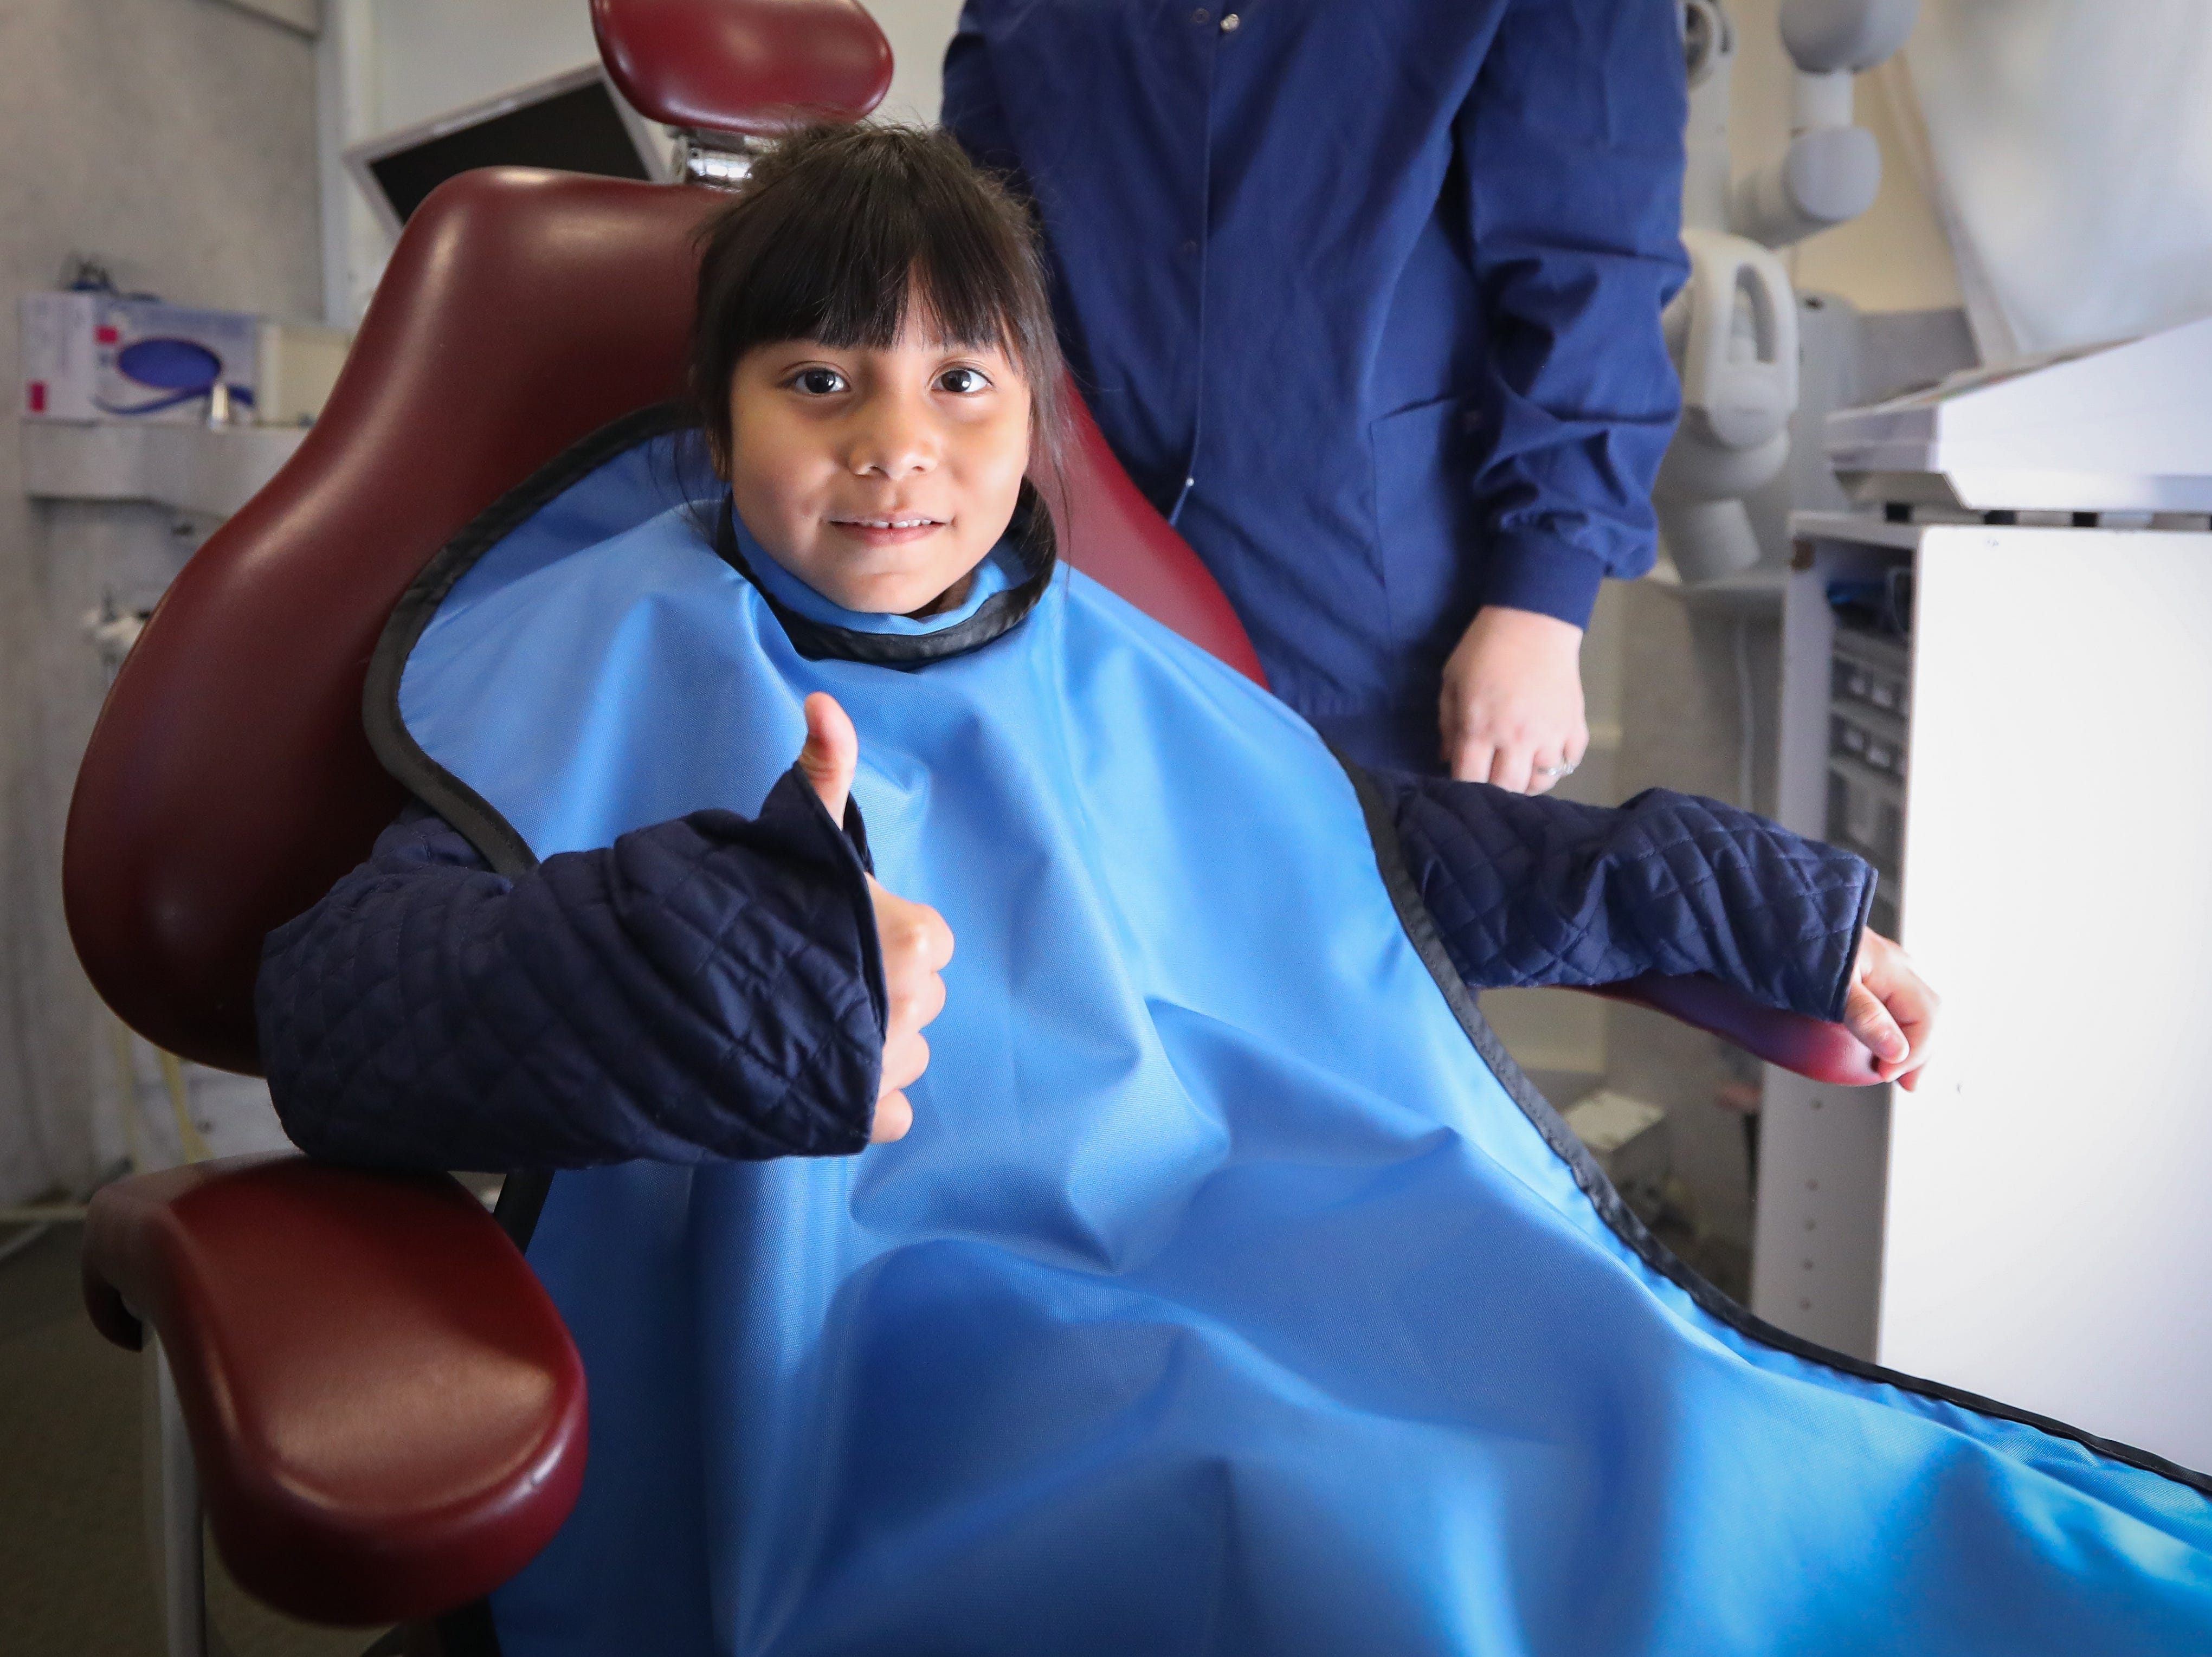 "Angela Alvarez, a Karen Acres kindergartner, gives a thumbs up prior to getting her teeth inspected in the Dental Connections mobile unit at Karen Acres Elementary School on Nov. 15, 2018 in Urbandale, Iowa. ""Dental Connections is a mobile unit that provides basic dental check-ups for students."